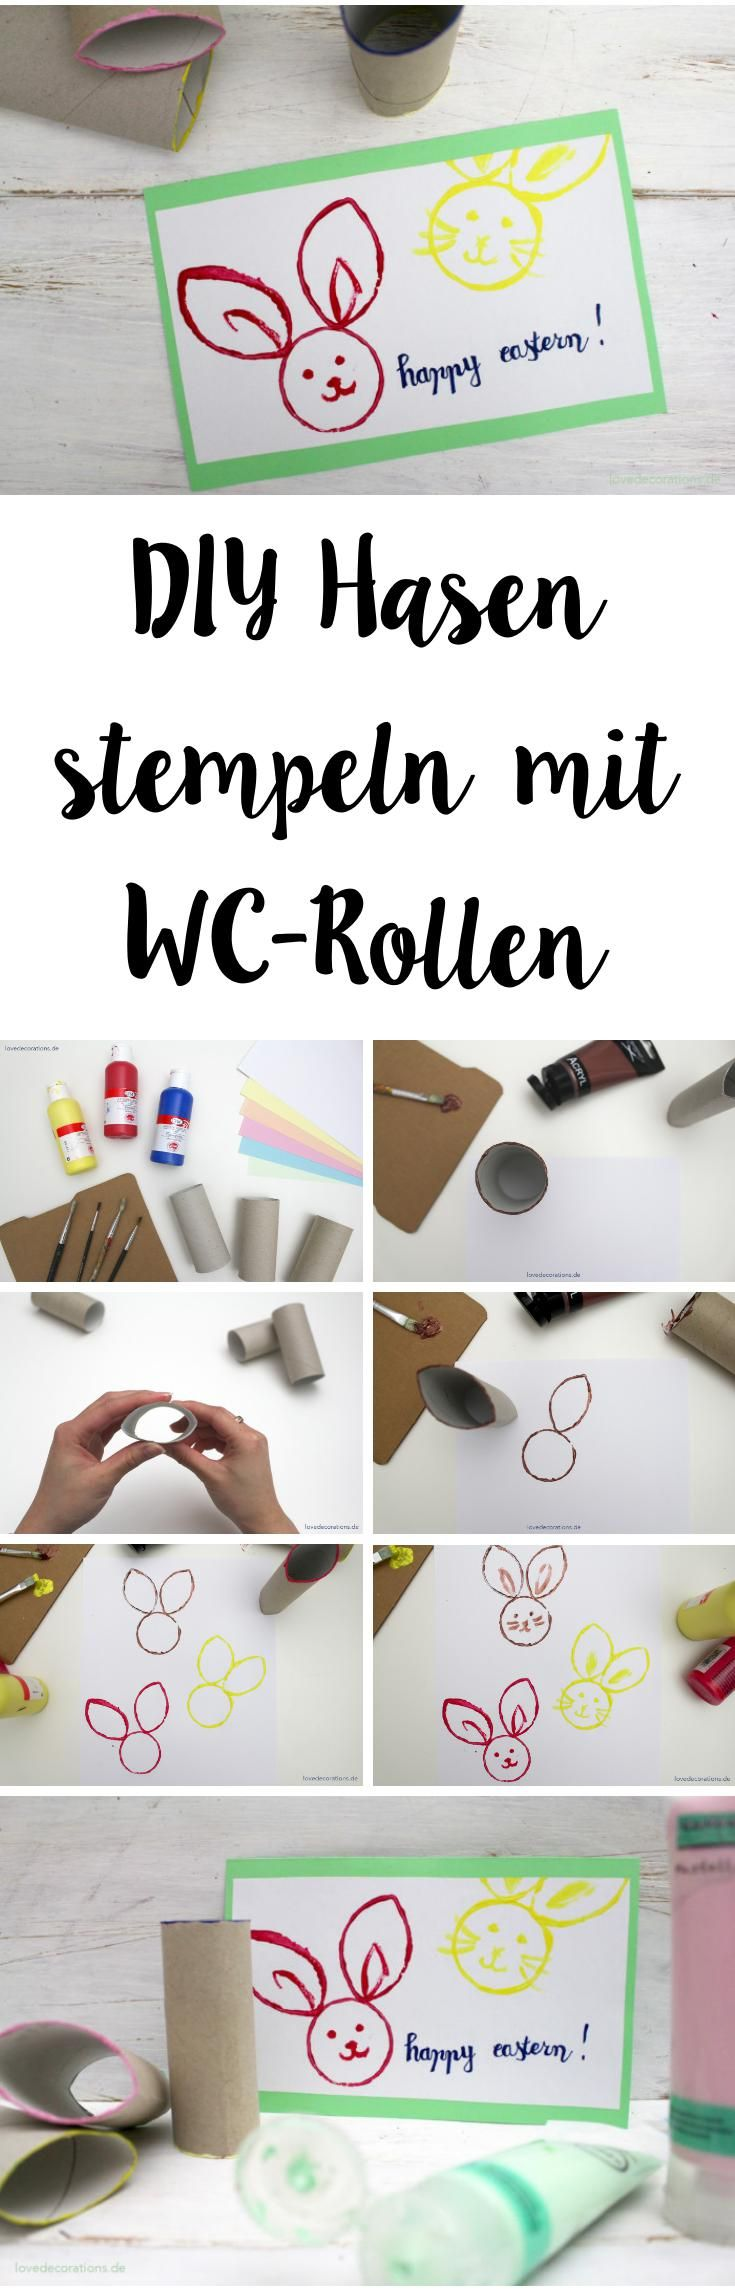 DIY stamped Bunny with WC-Rolls | DIY Hasen stempeln mit WC-Rollen